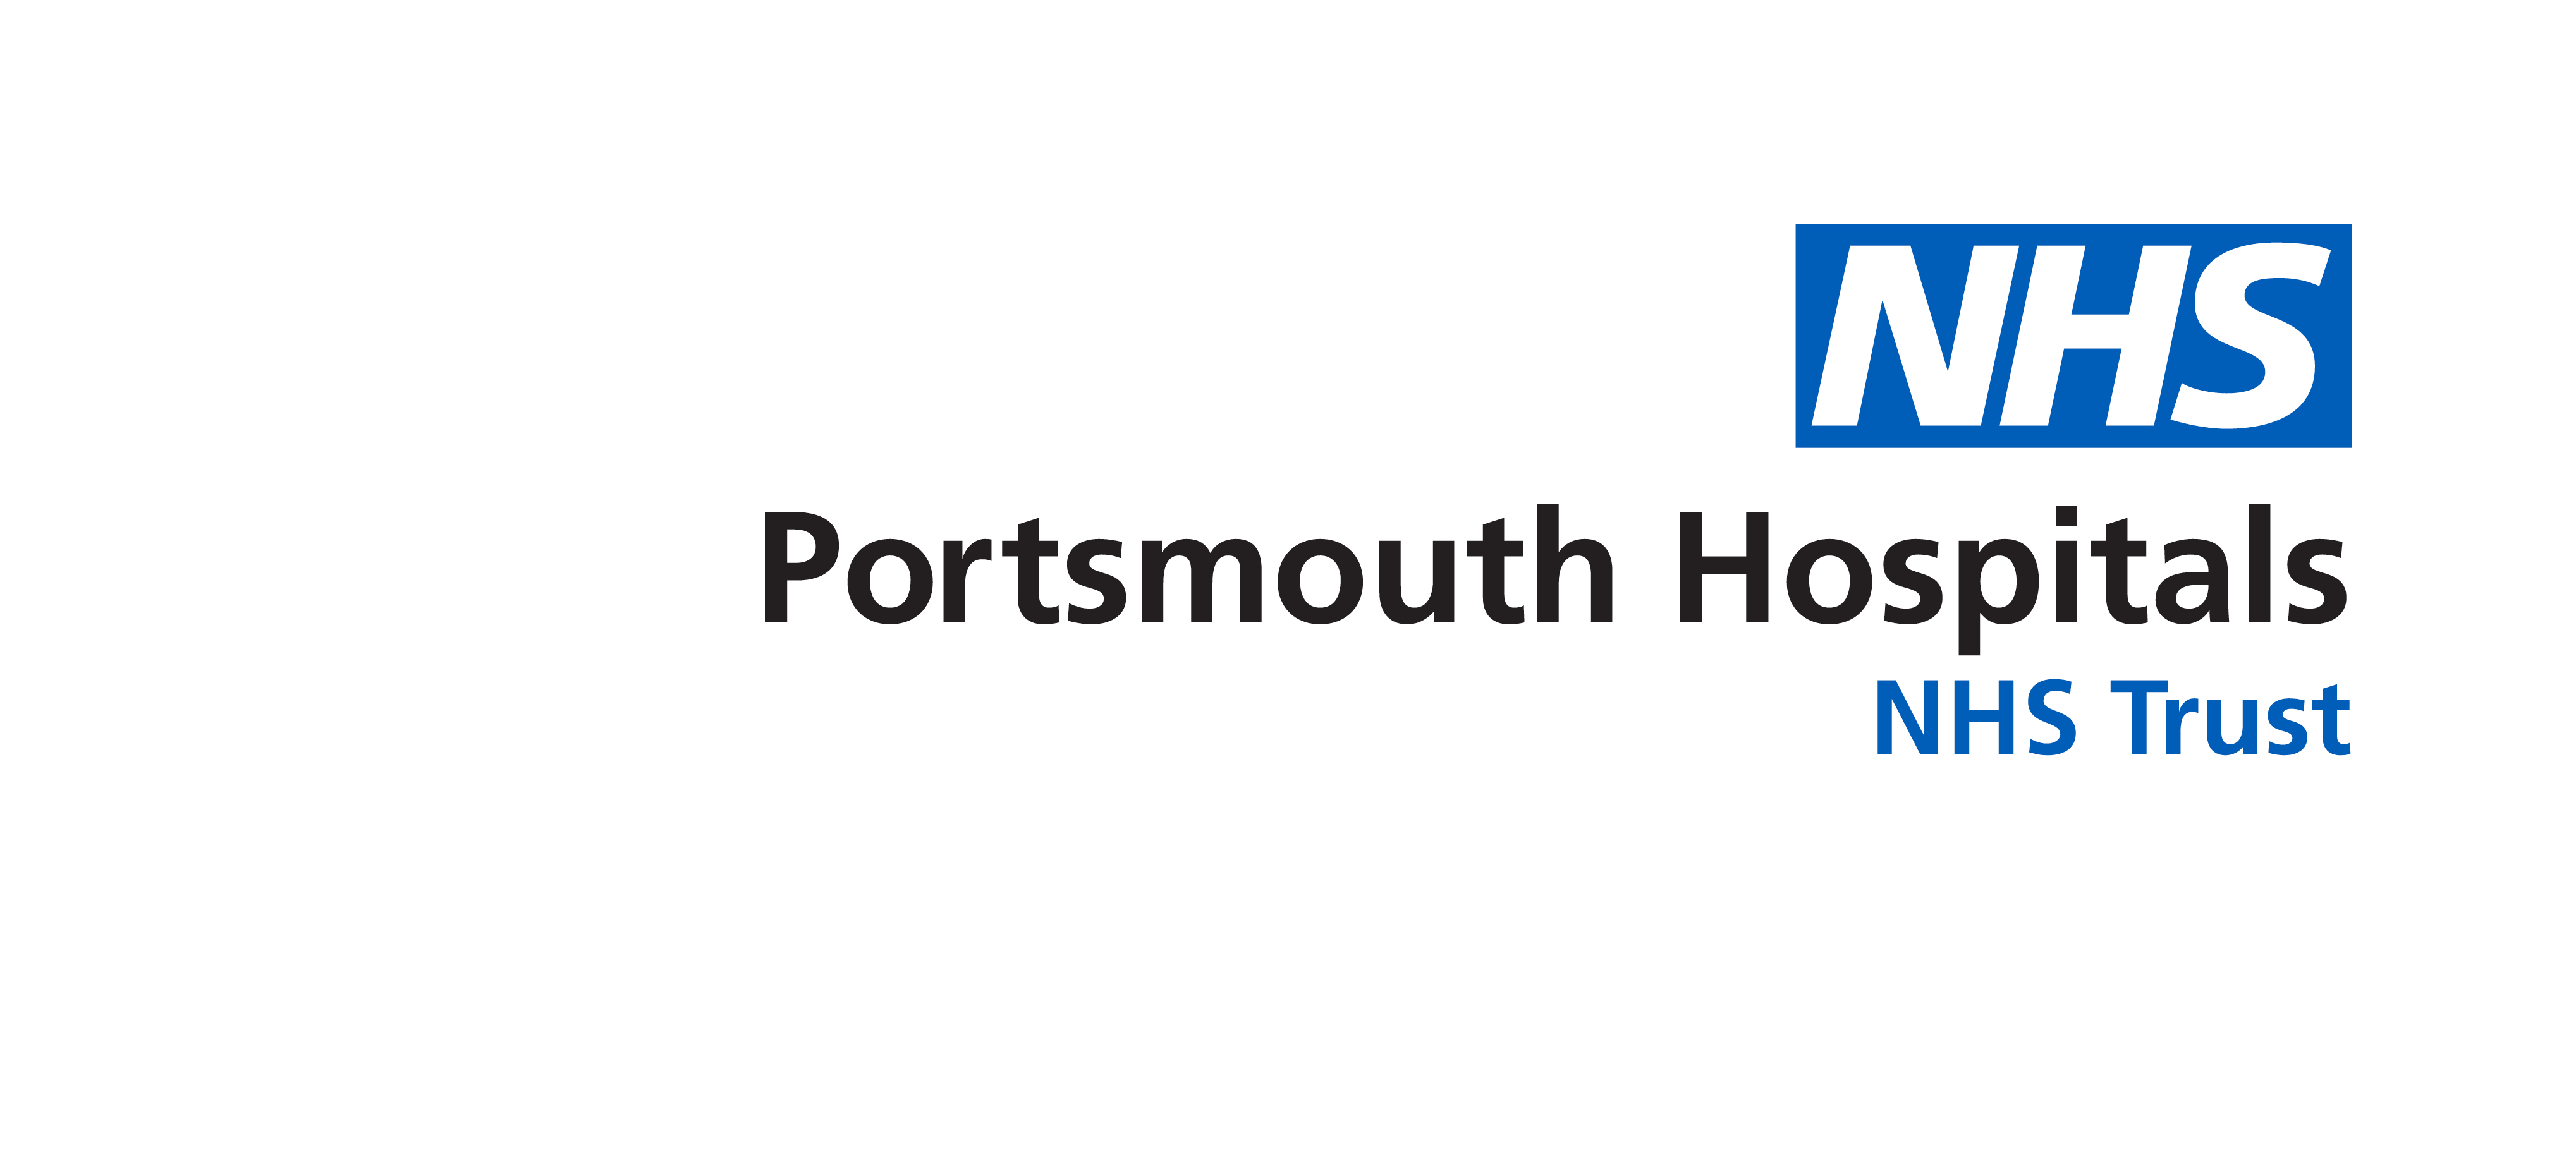 Portsmouth Hospitals NHS Trust Quality Accounts 2018/19